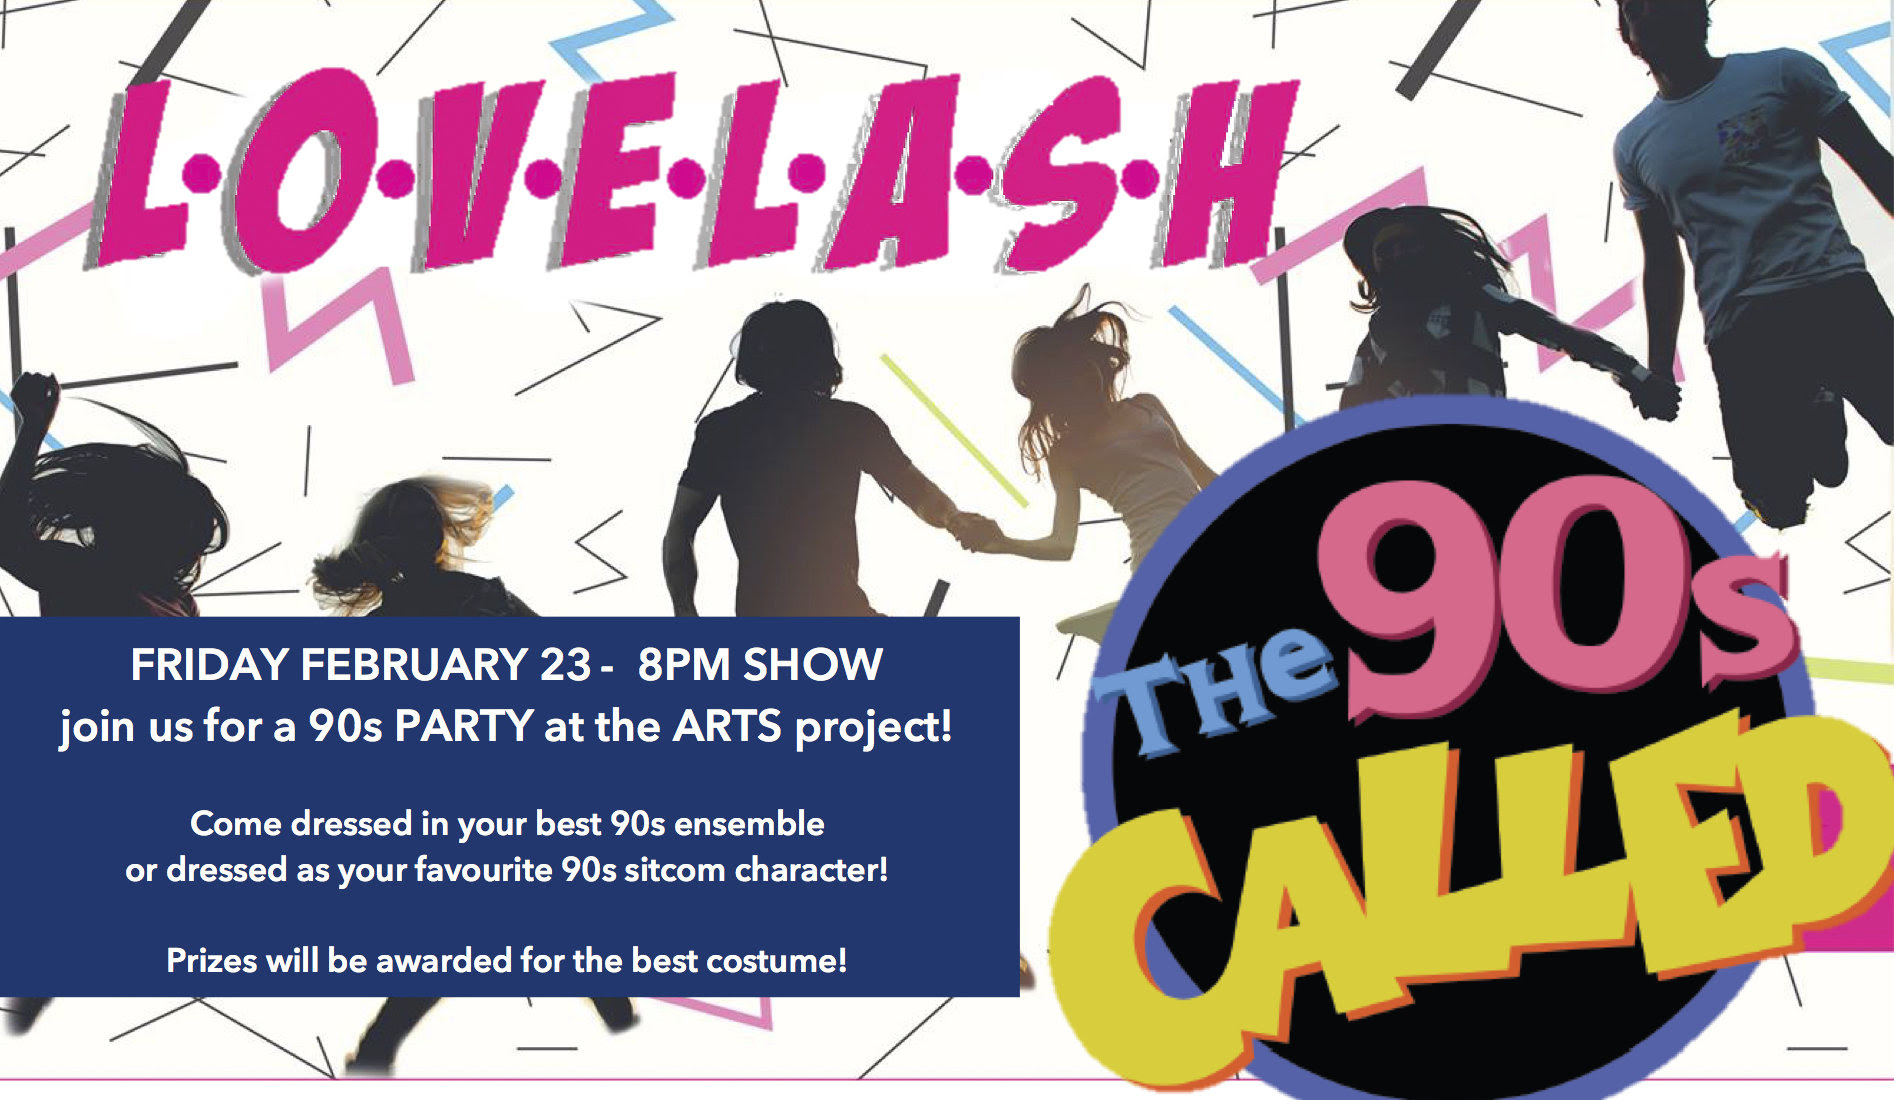 """MTP invites you to a 90s party LOVELASH-style! Join us for the evening performance on Fri. Feb. 23rd for """"THE 90s CALLED!"""" at The ARTS Project! Dress-up in your favourite 90s attire, or as your favourite 90s sitcom character for a chance to win some bomb prizes, and take in a show that will have you craving a marathon of """"Friends"""" and """"Seinfeld"""". So break out your best Fresh Prince denim jacket or your Urkel glasses and join us for a totally fly party!"""